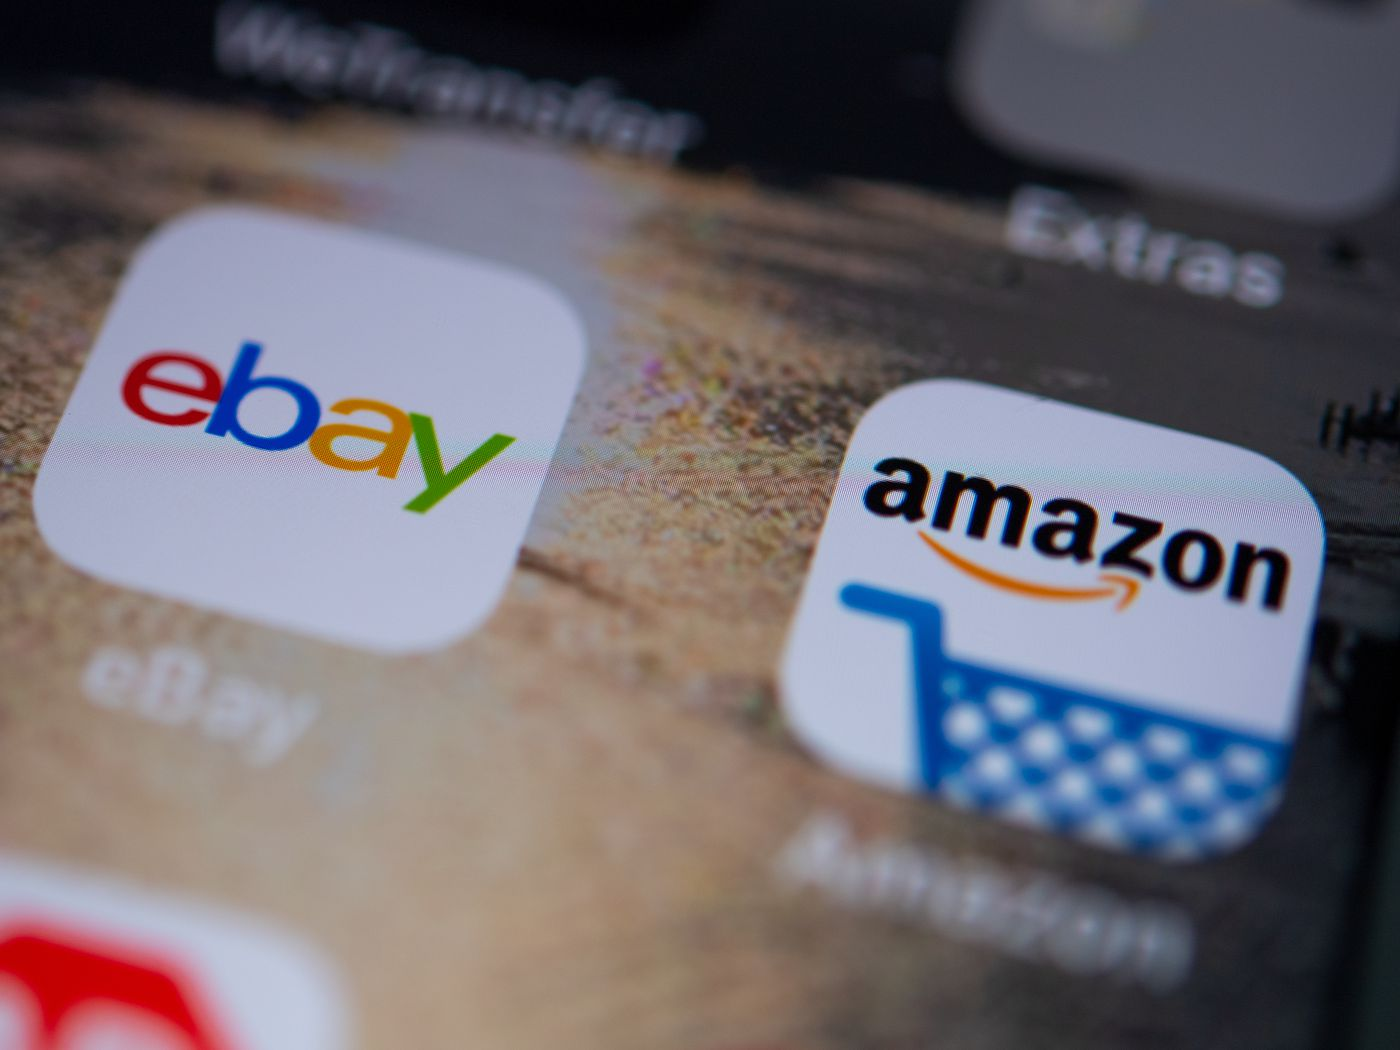 Amazon Prime Day 2019 Ebay Offers Deals To Compete Vox